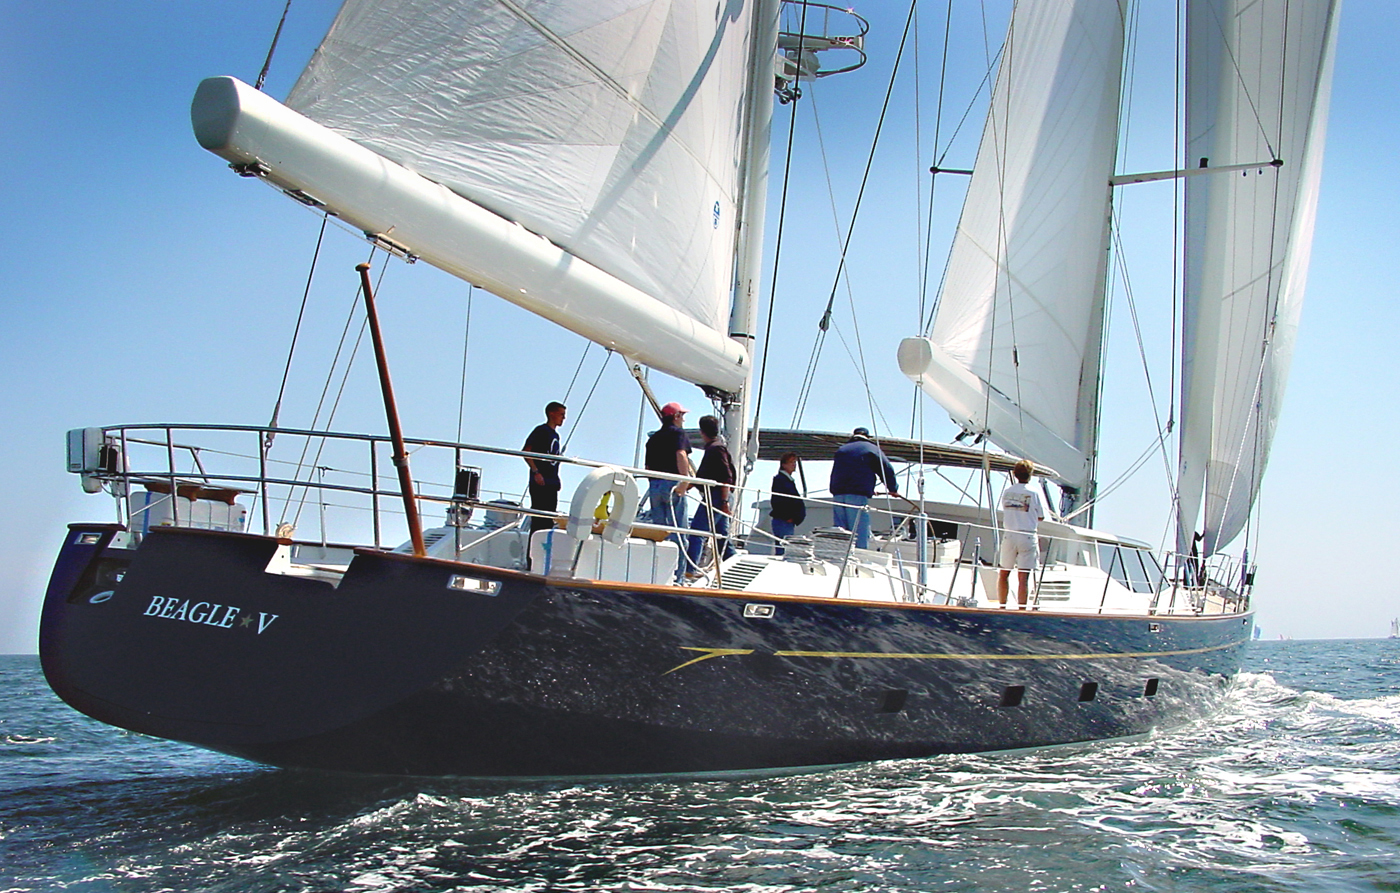 Beagle Star V signs up for Inmarsat's new fully flexible Fleet Xpress plan for superyachts